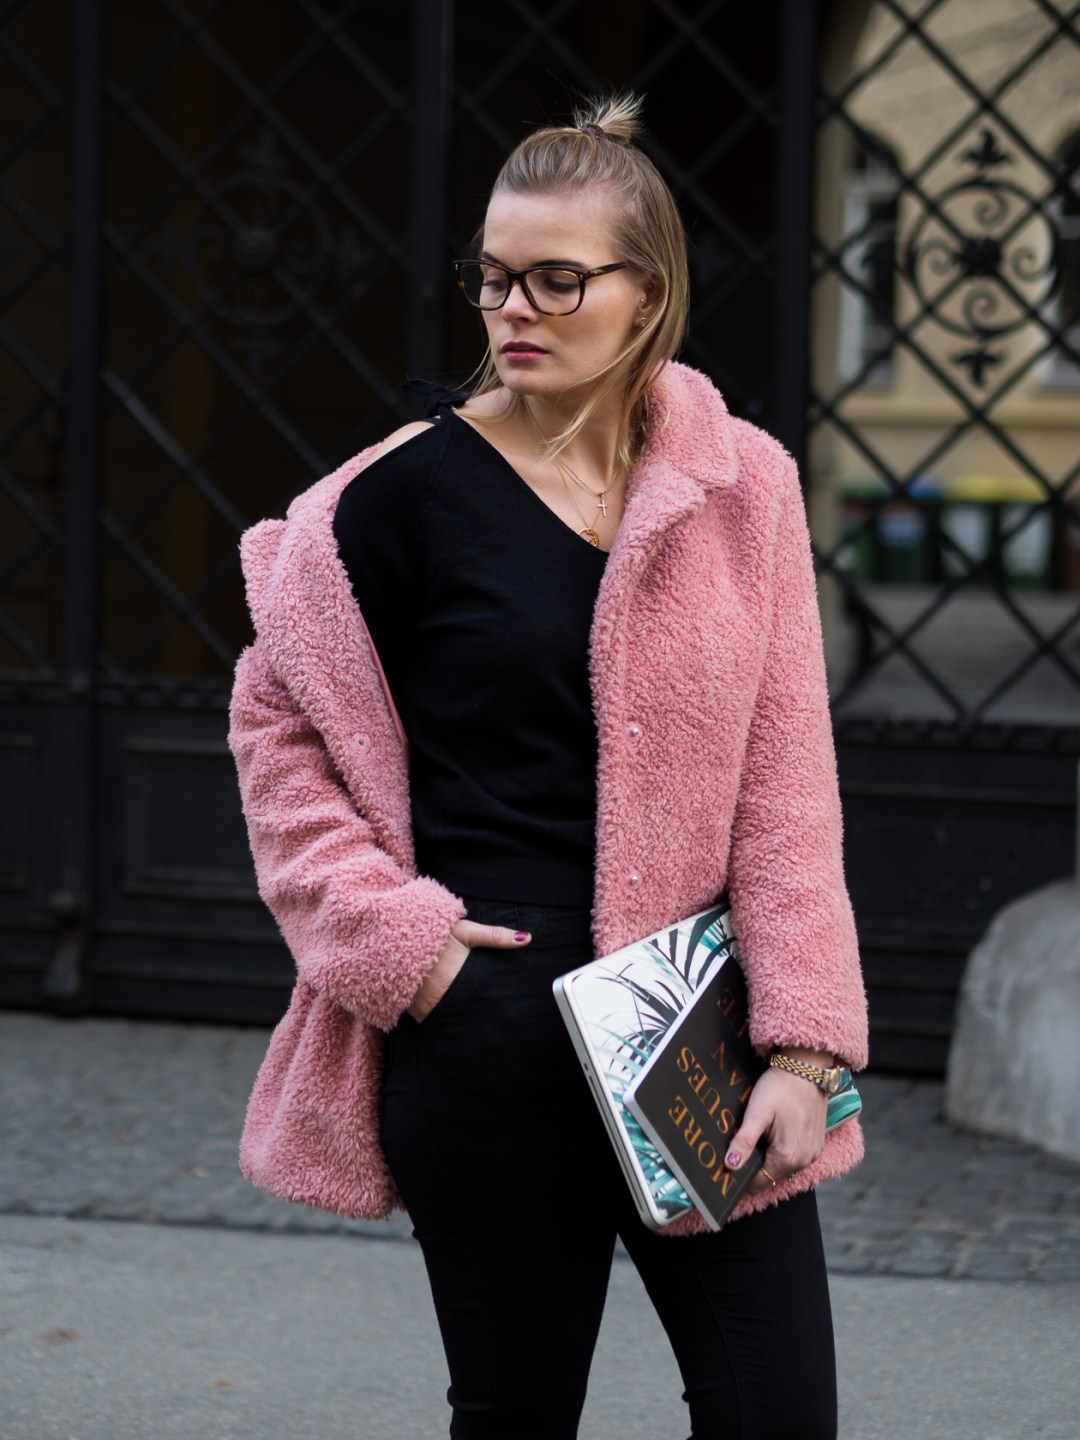 Fellmantel, Fluffy Coat, Fake Fur Mantel, Schwarzer Pullover, Schwarze Hose, Fashion, Day to night LookA